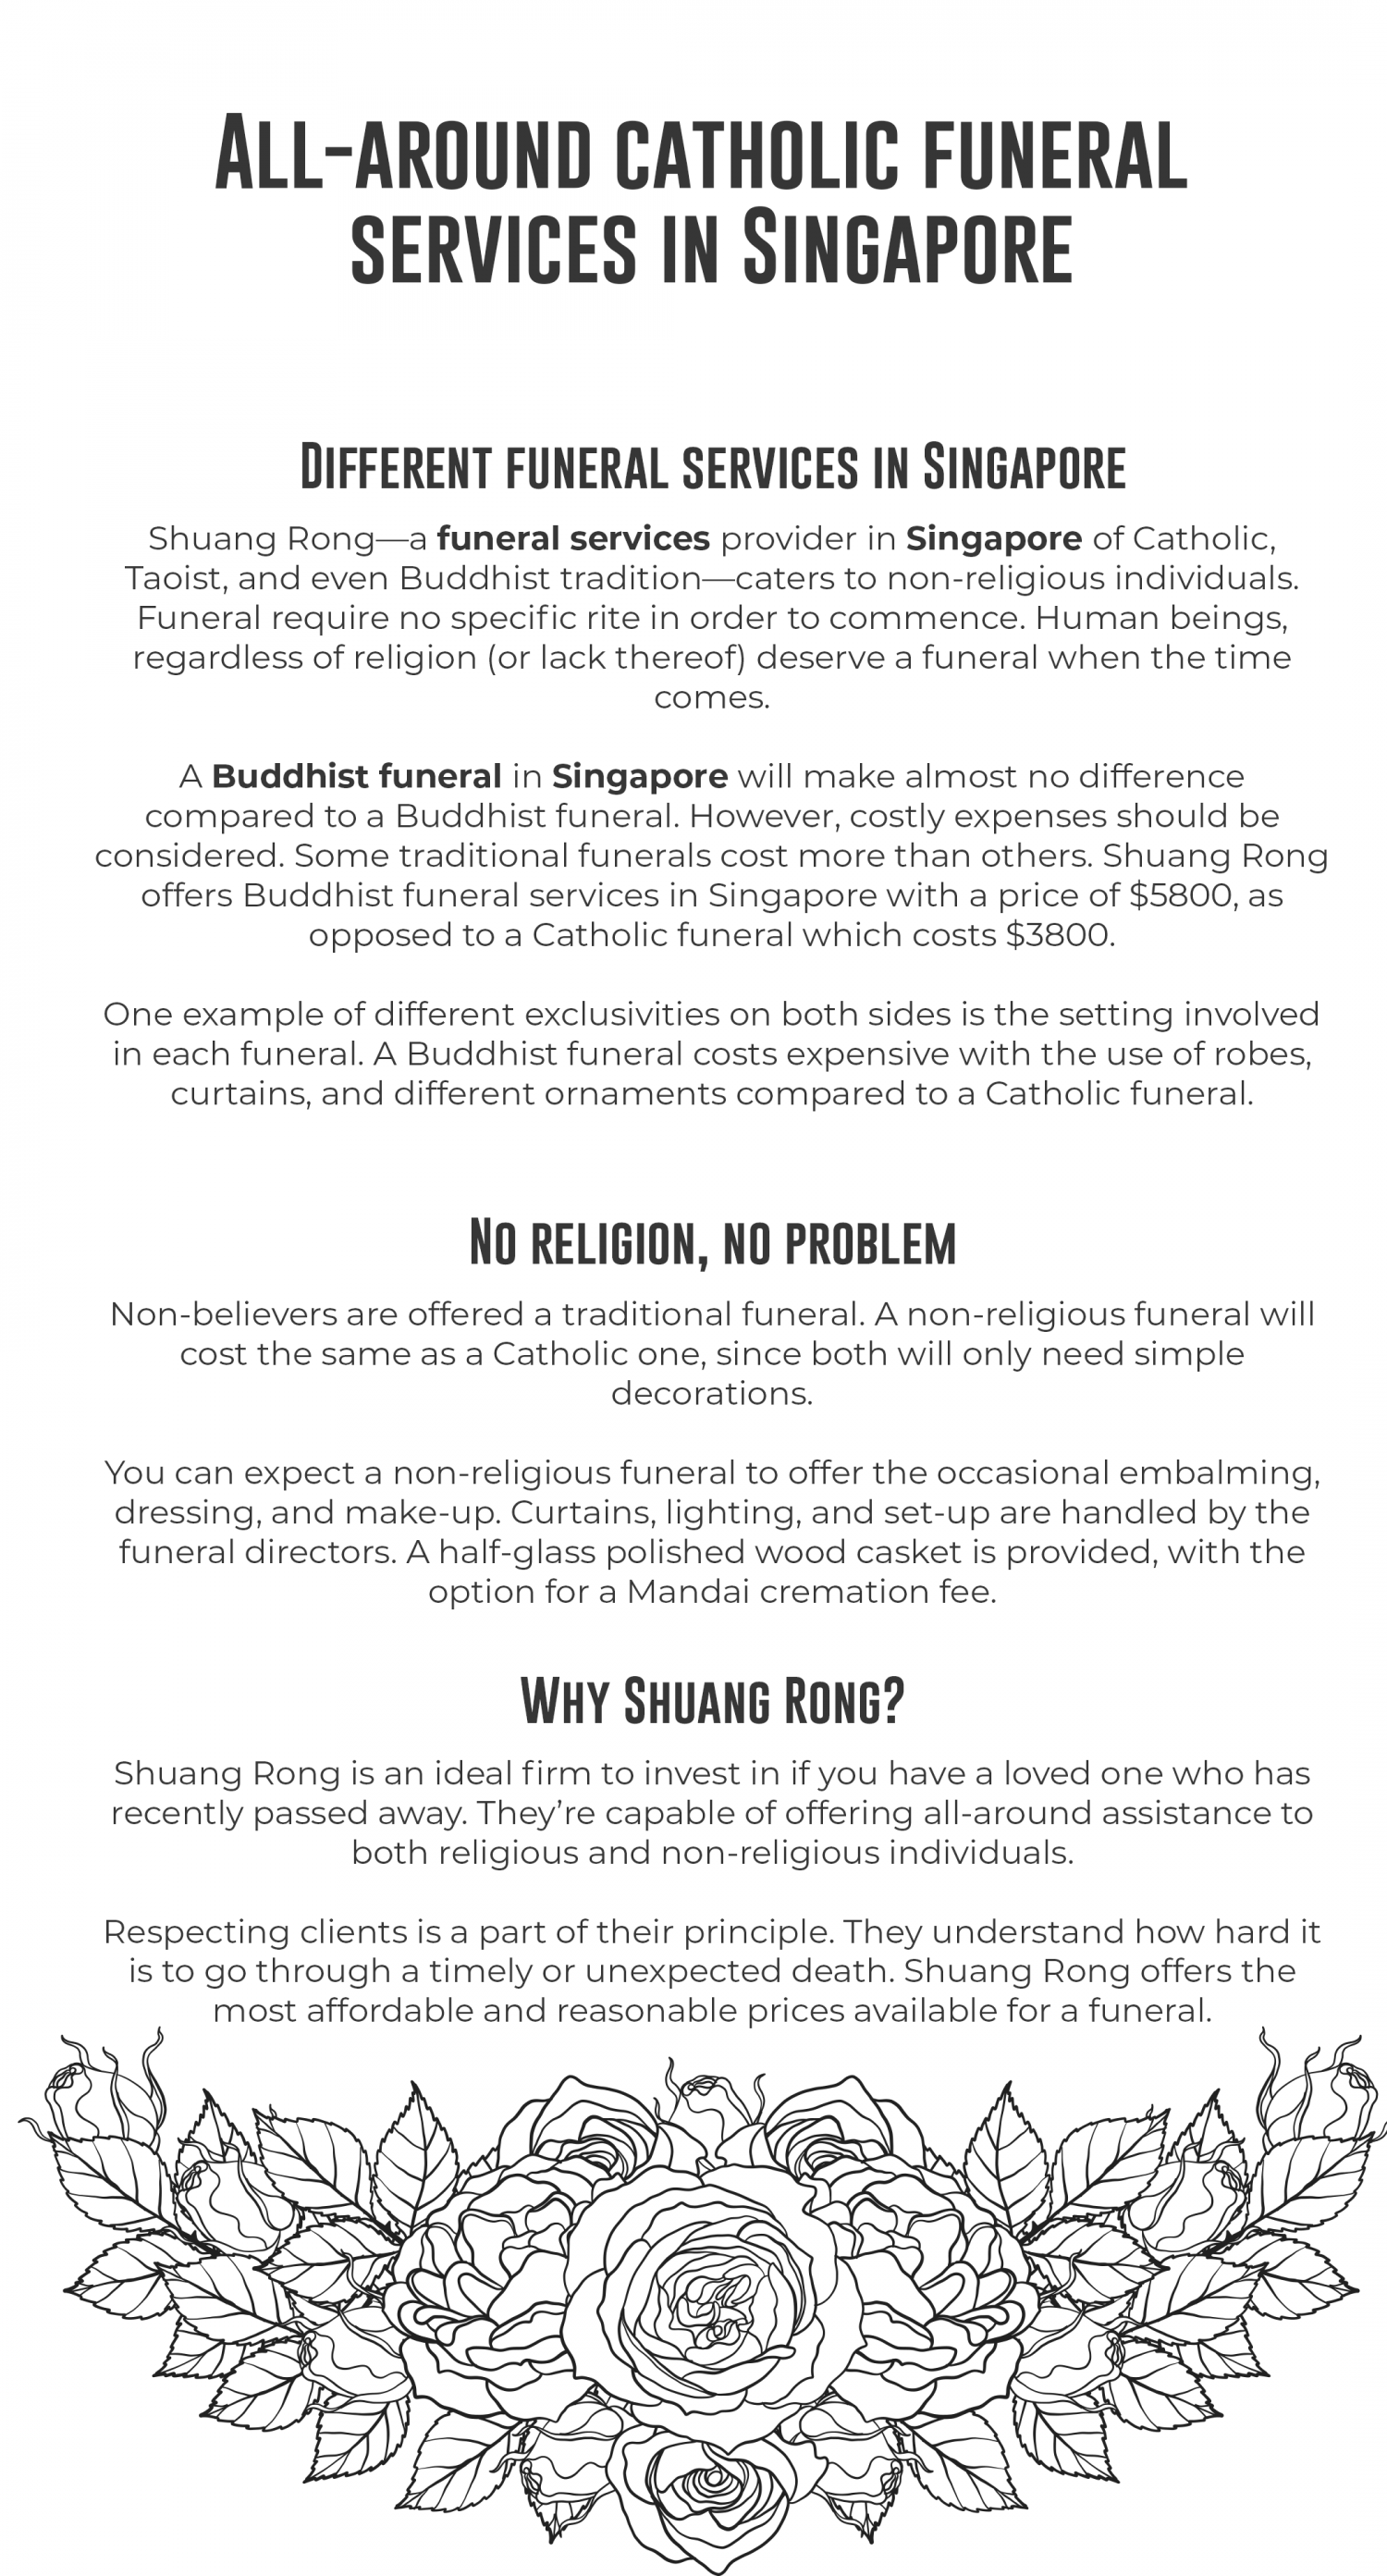 All-around buddhist funeral services in Singapore Infographic